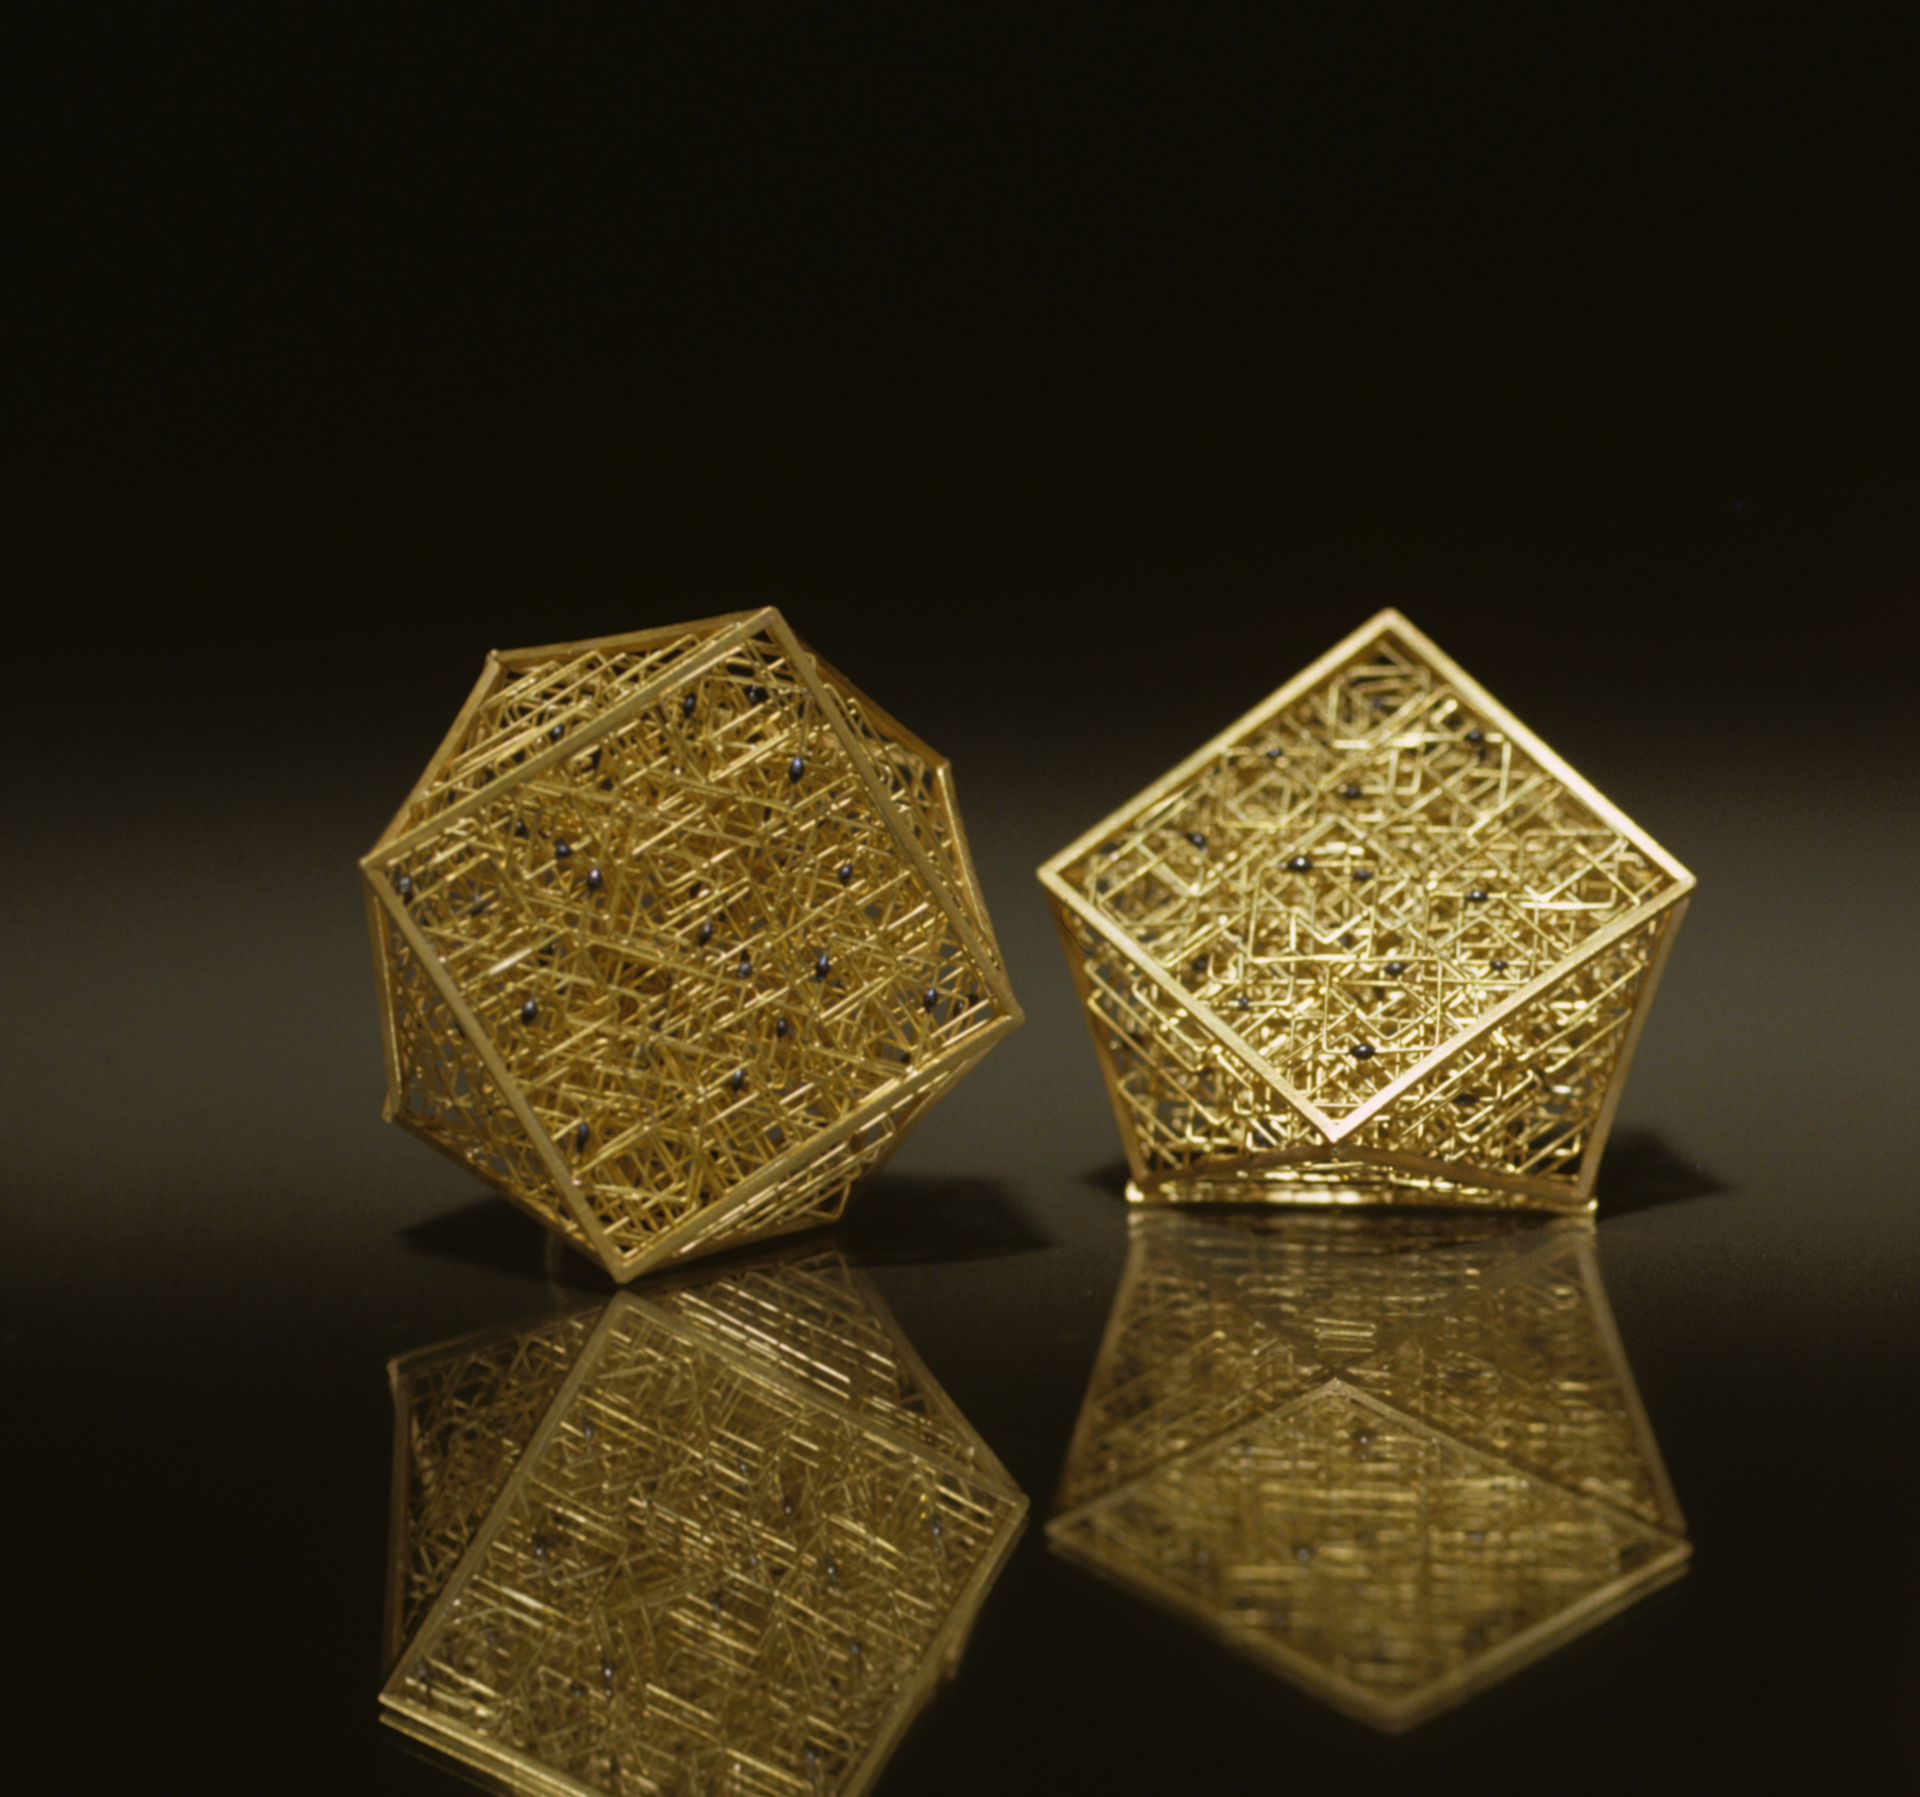 Giovanni Corvaja, the Fascinating Goldsmith Master - Golden Cubes Goldsmiths Giovanni Corvaja: one of the Best Italian Goldsmiths Giovanni Corvaja the Fascinating Goldsmith Master Golden Cubes